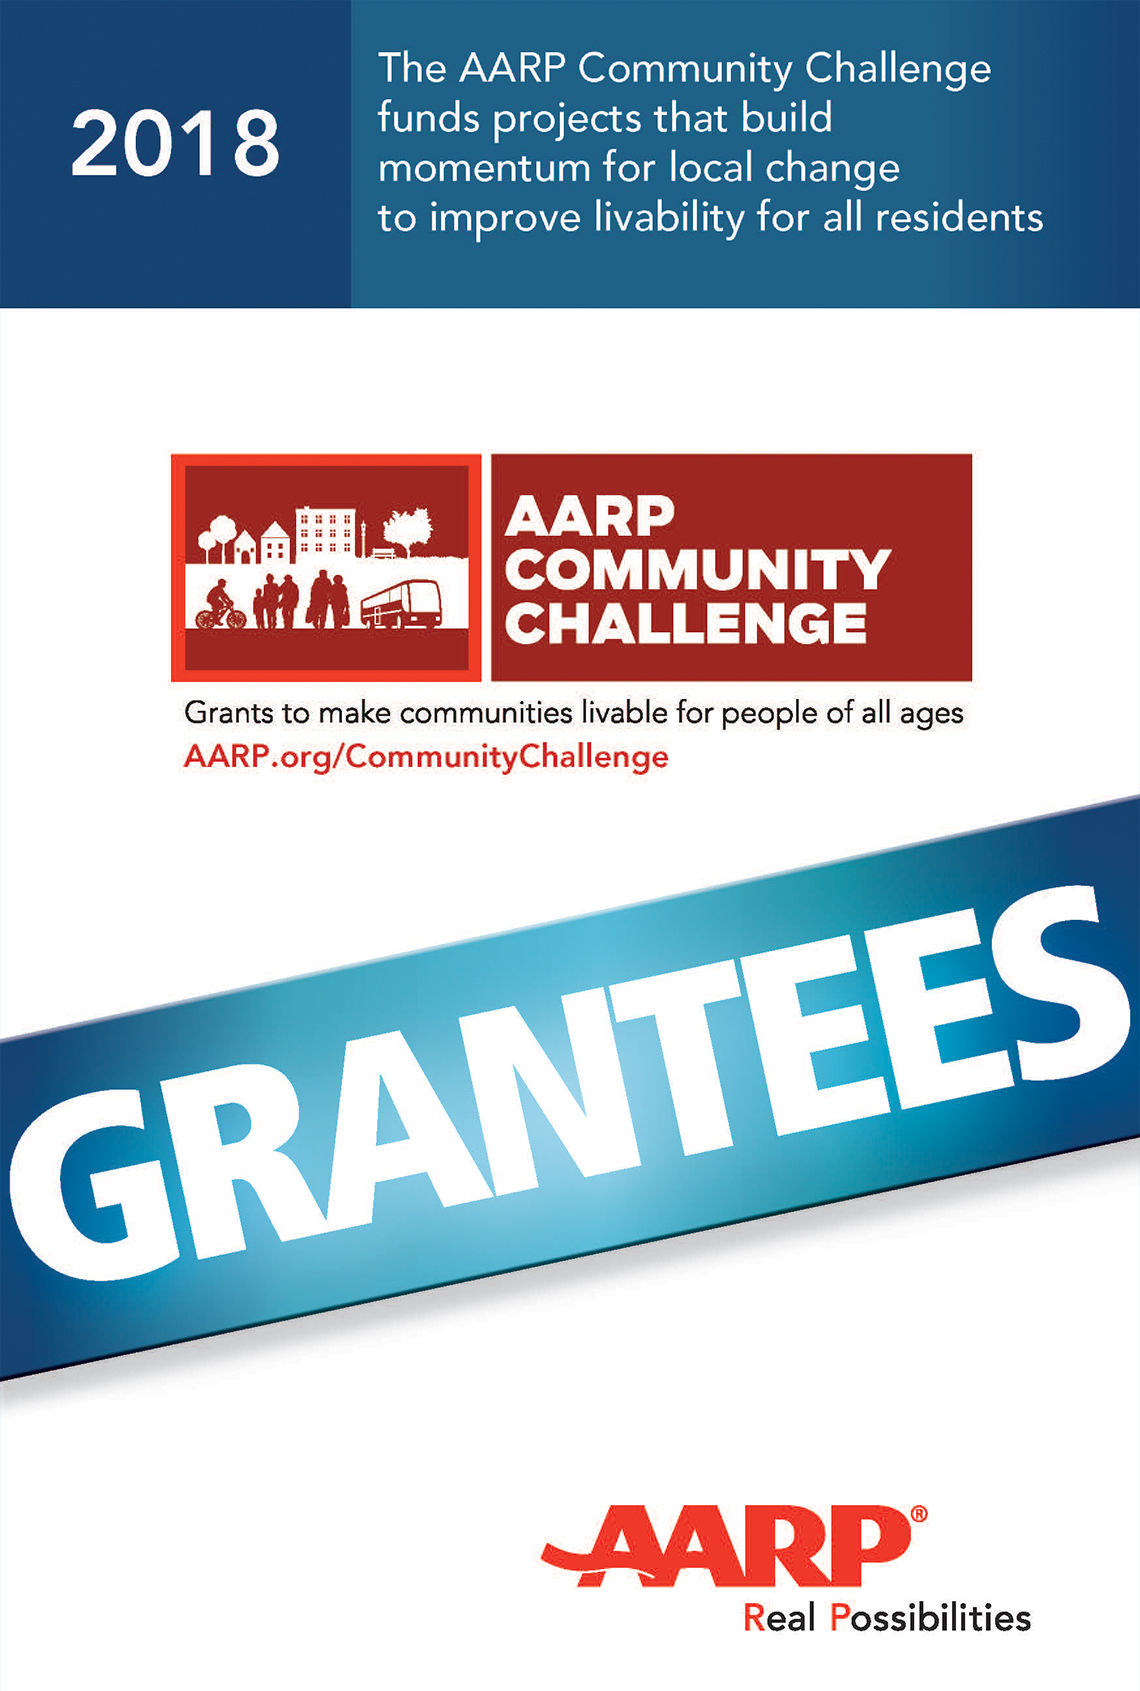 Cover of the 2018 AARP Community Challenge Booklet of Grantess